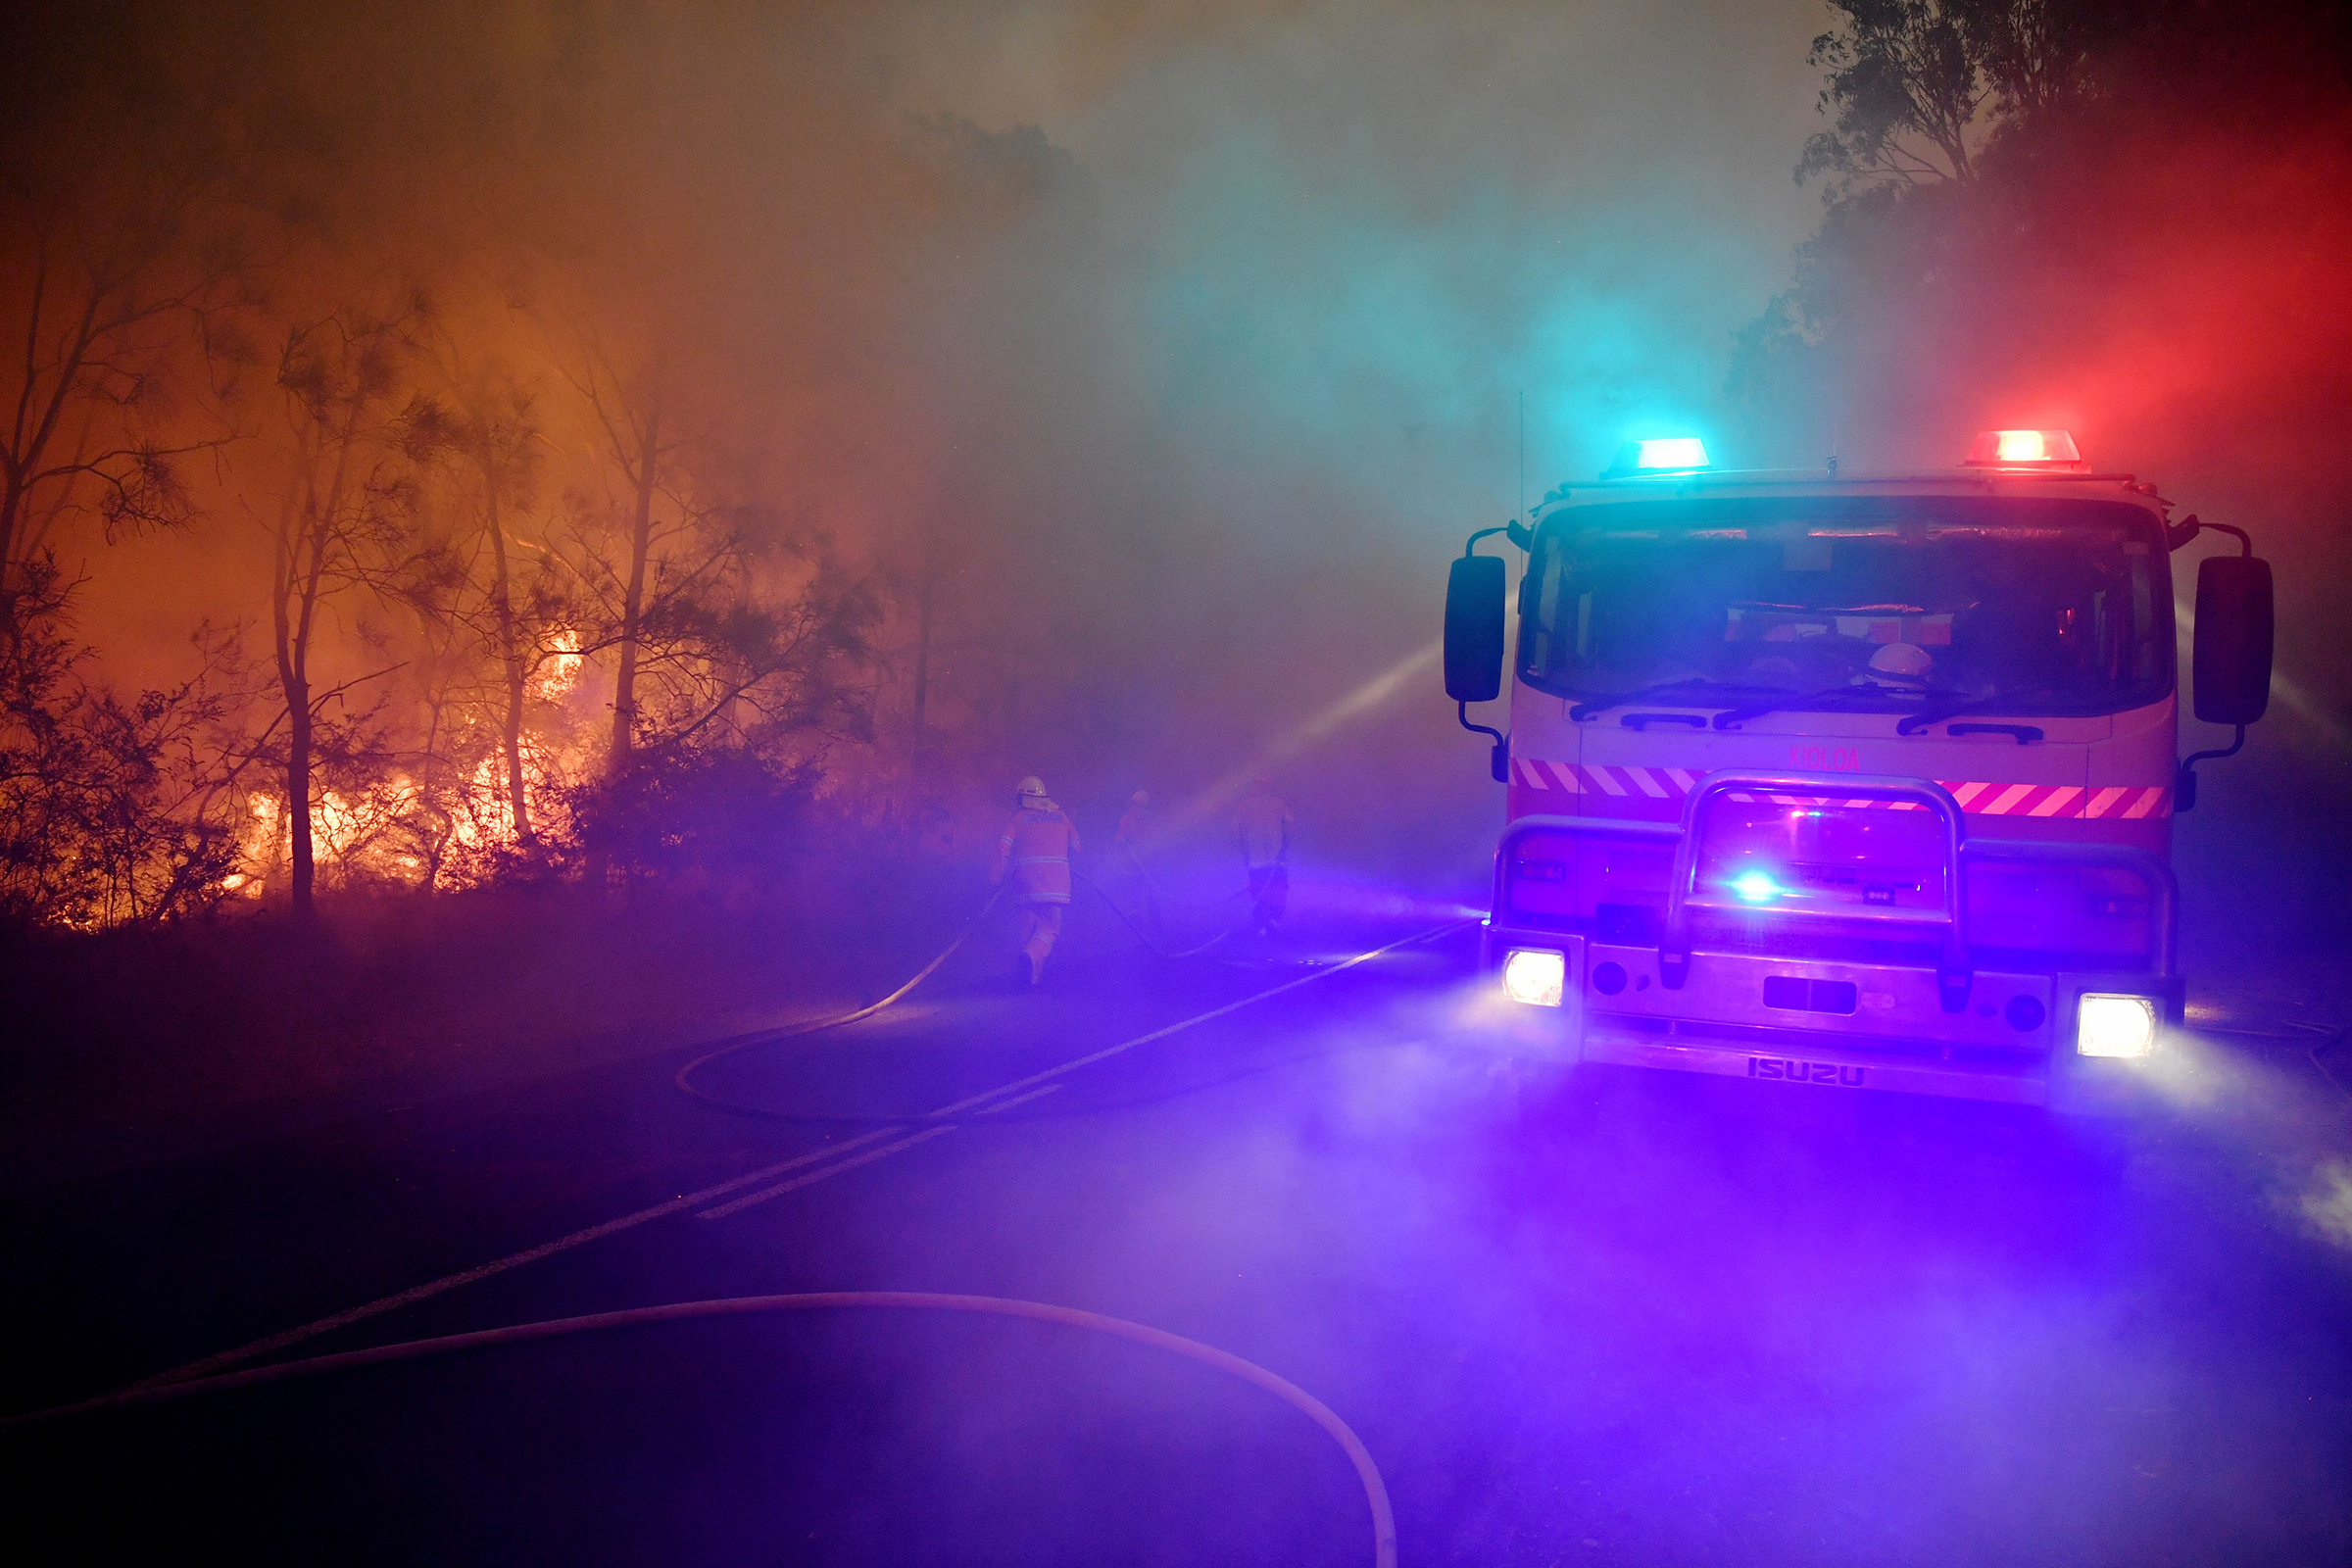 Fire and rescue officers try to contain a bushfire near Kioloa, New South Wales, on Dec. 3, 2019.